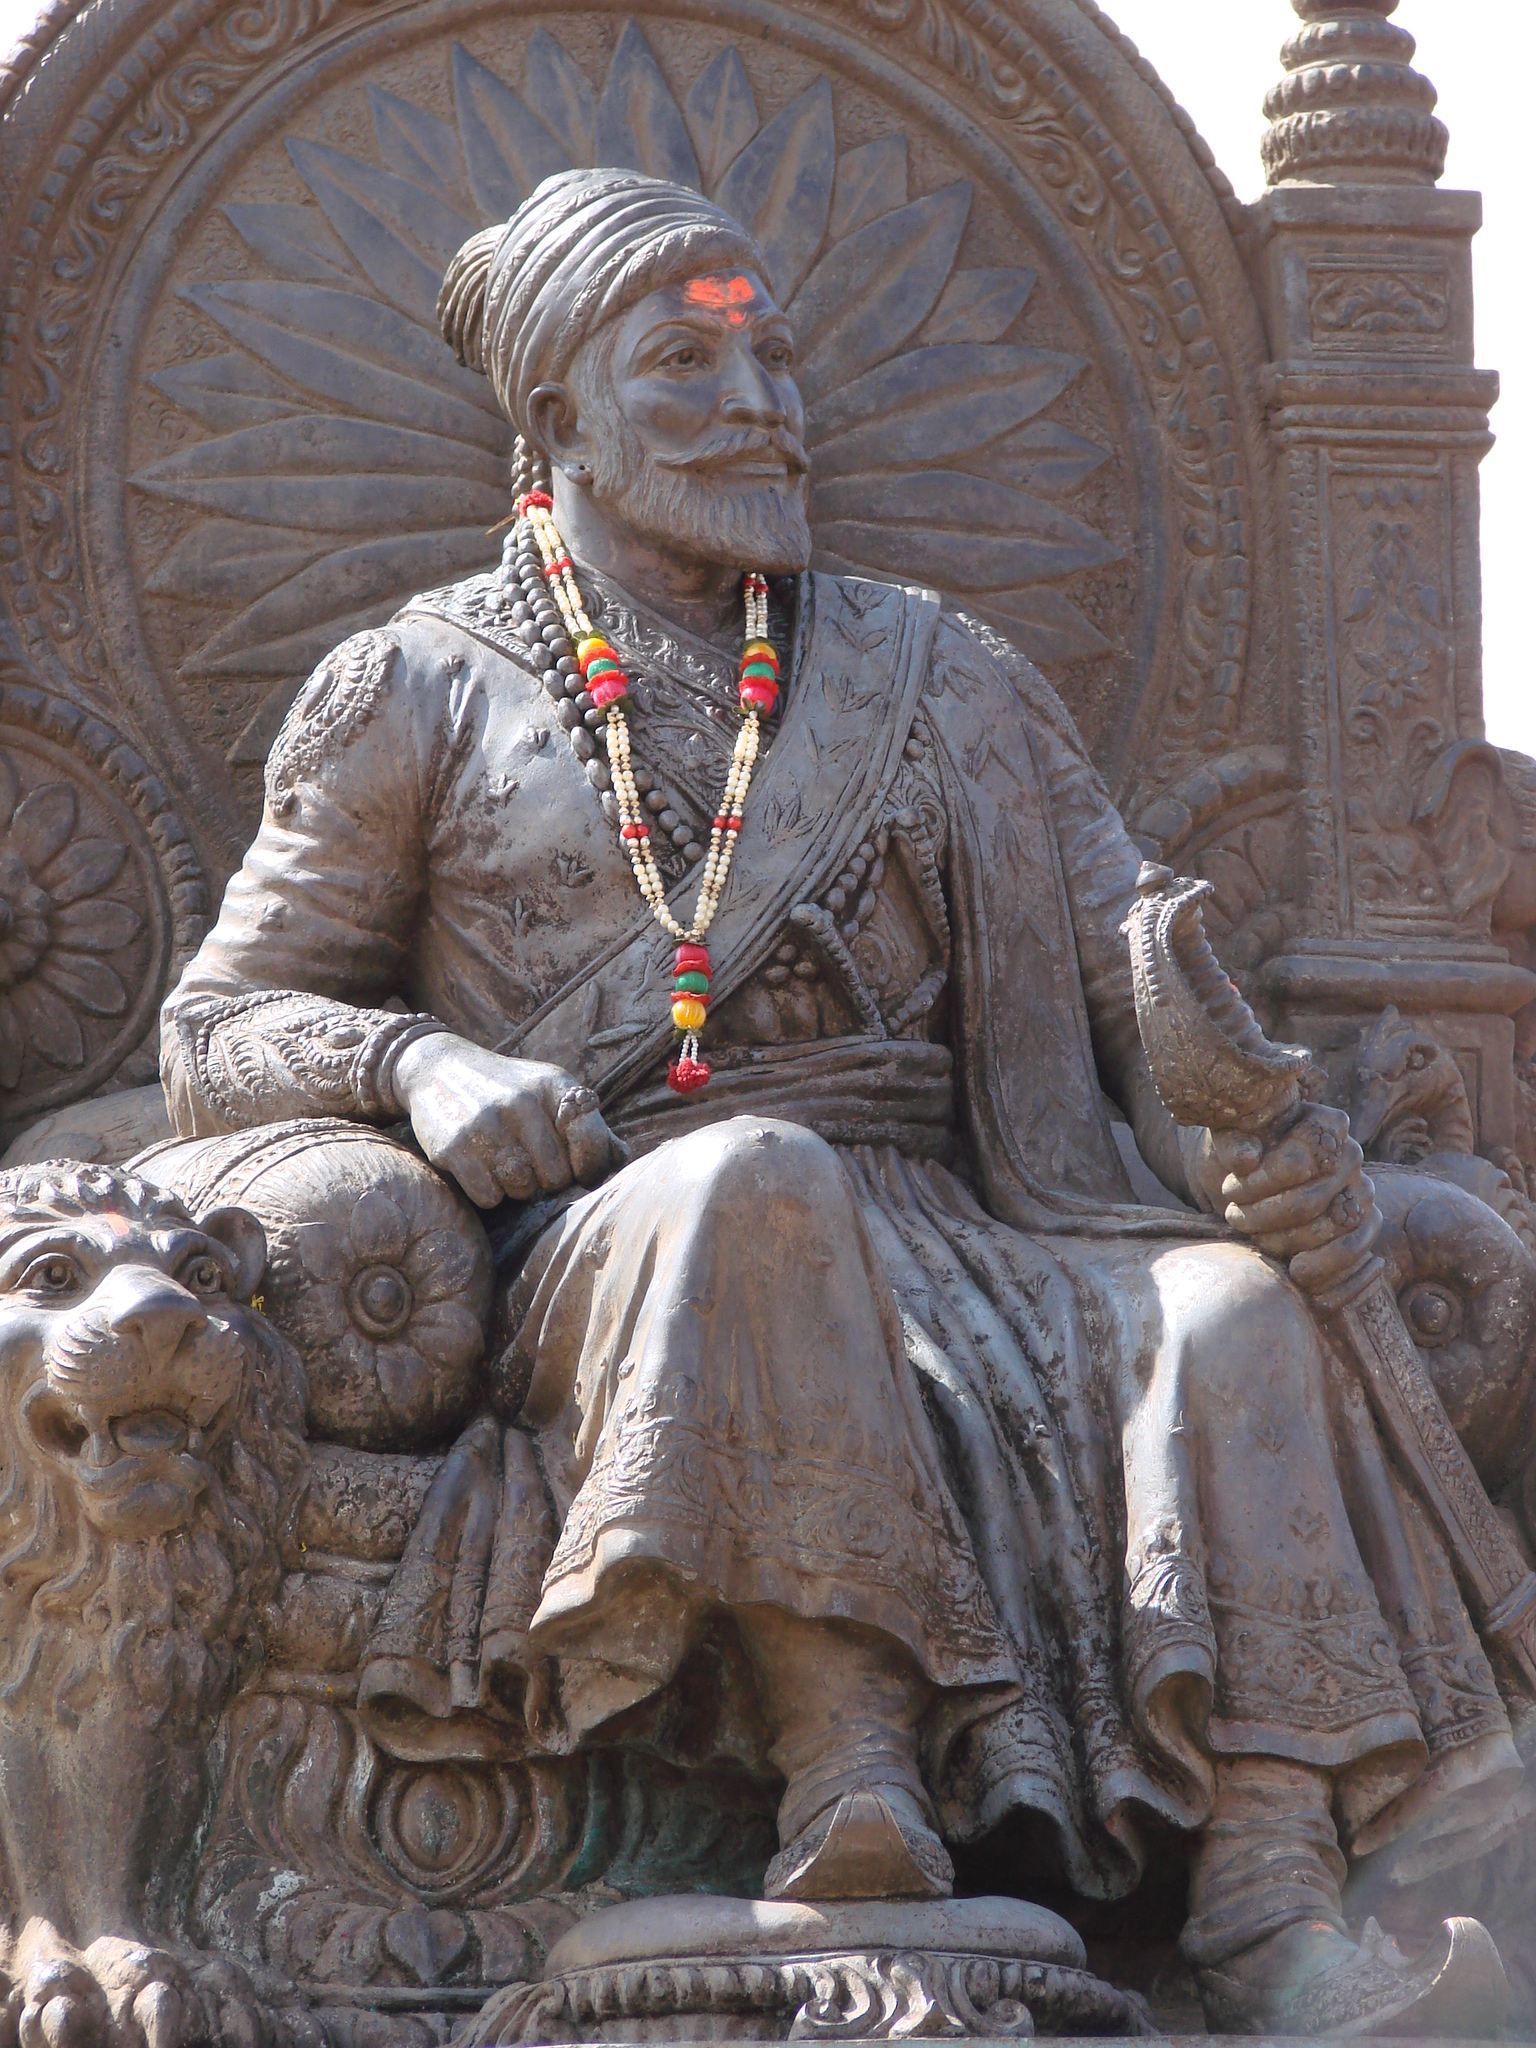 chhatrapati shivaji essay in gujarati Chhatrapati shivaji chatrapati shivaji maharaj was the founder of the maratha empire in western india he is considered to be one of the greatest warriors of his time and even today, stories of his exploits are narrated as a part of the folklore.